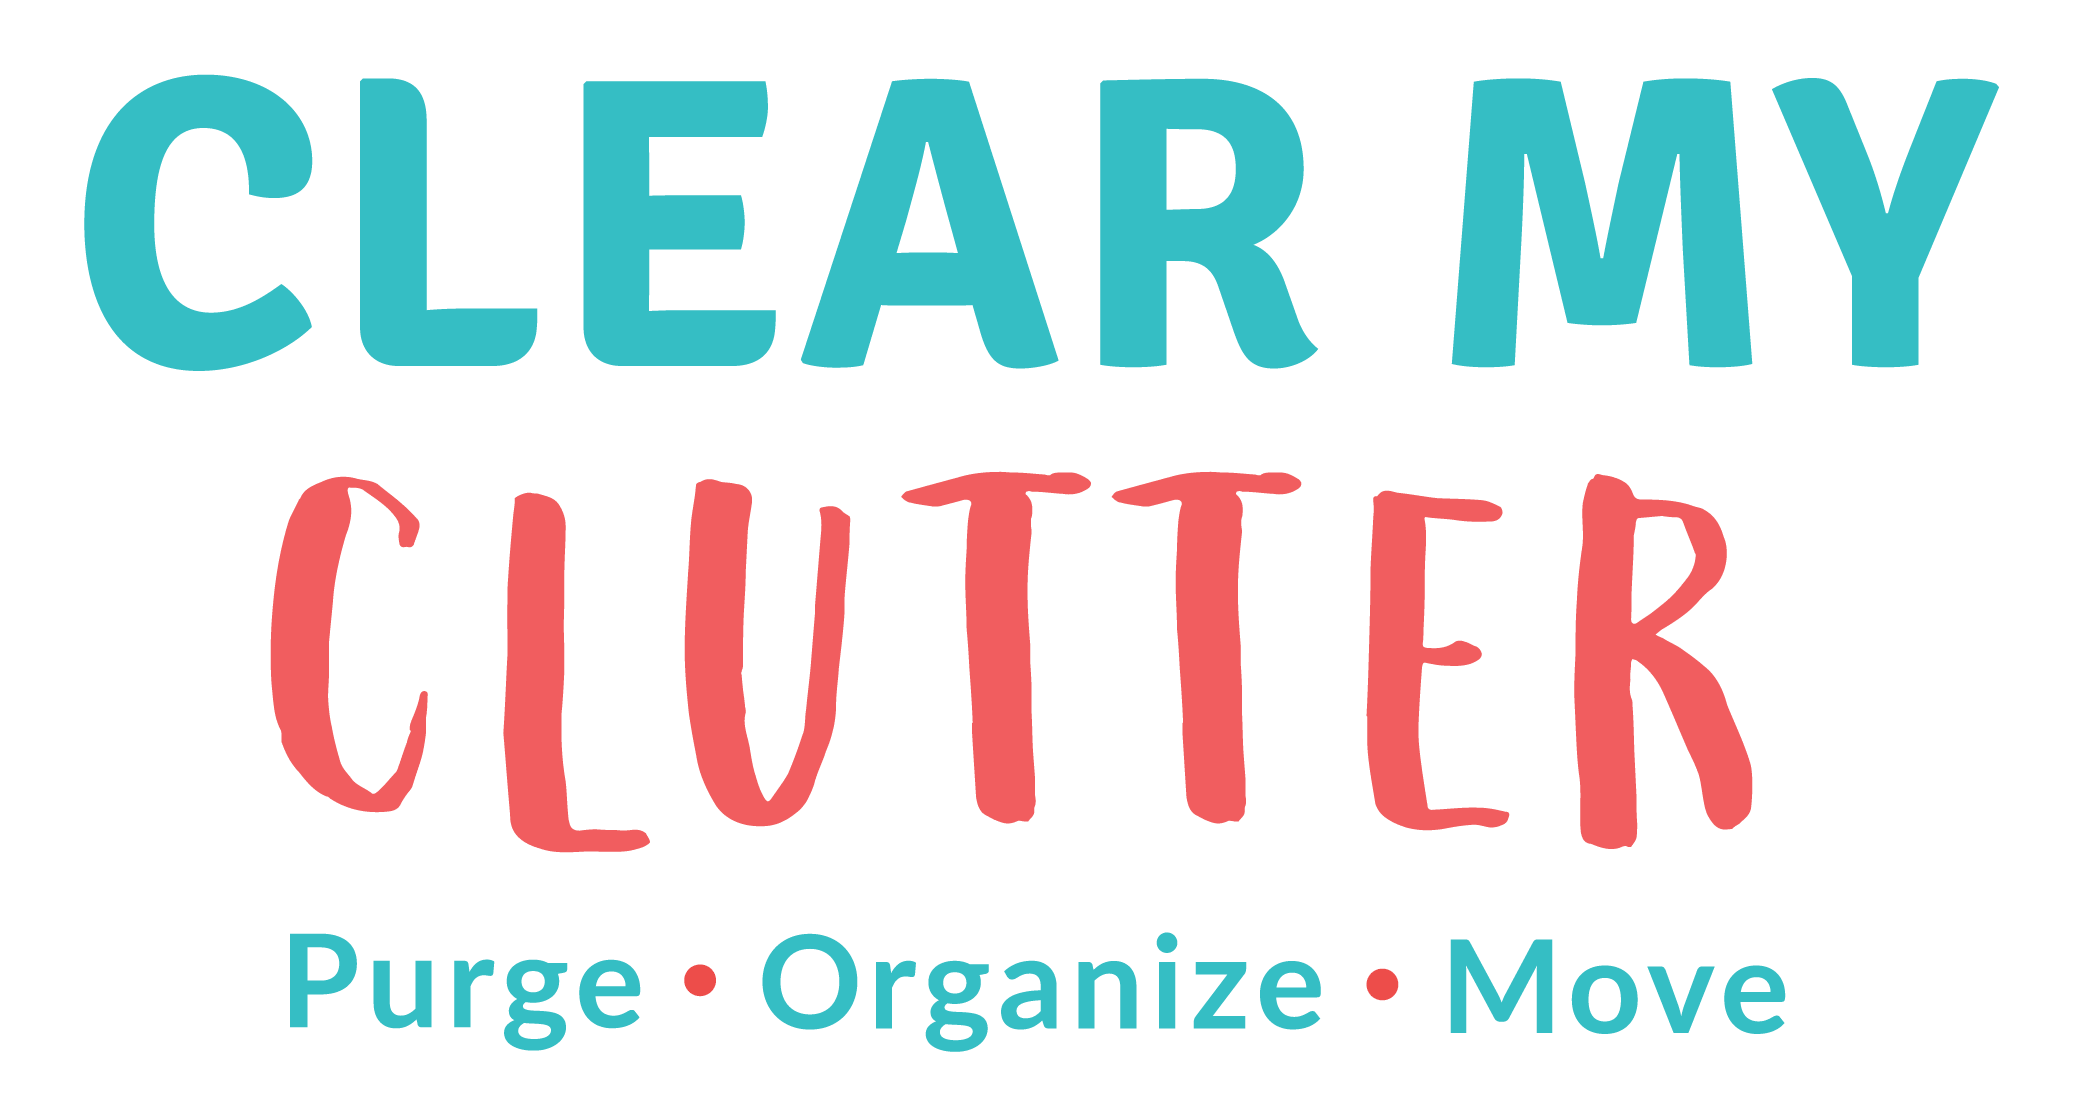 Clear my clutter logo